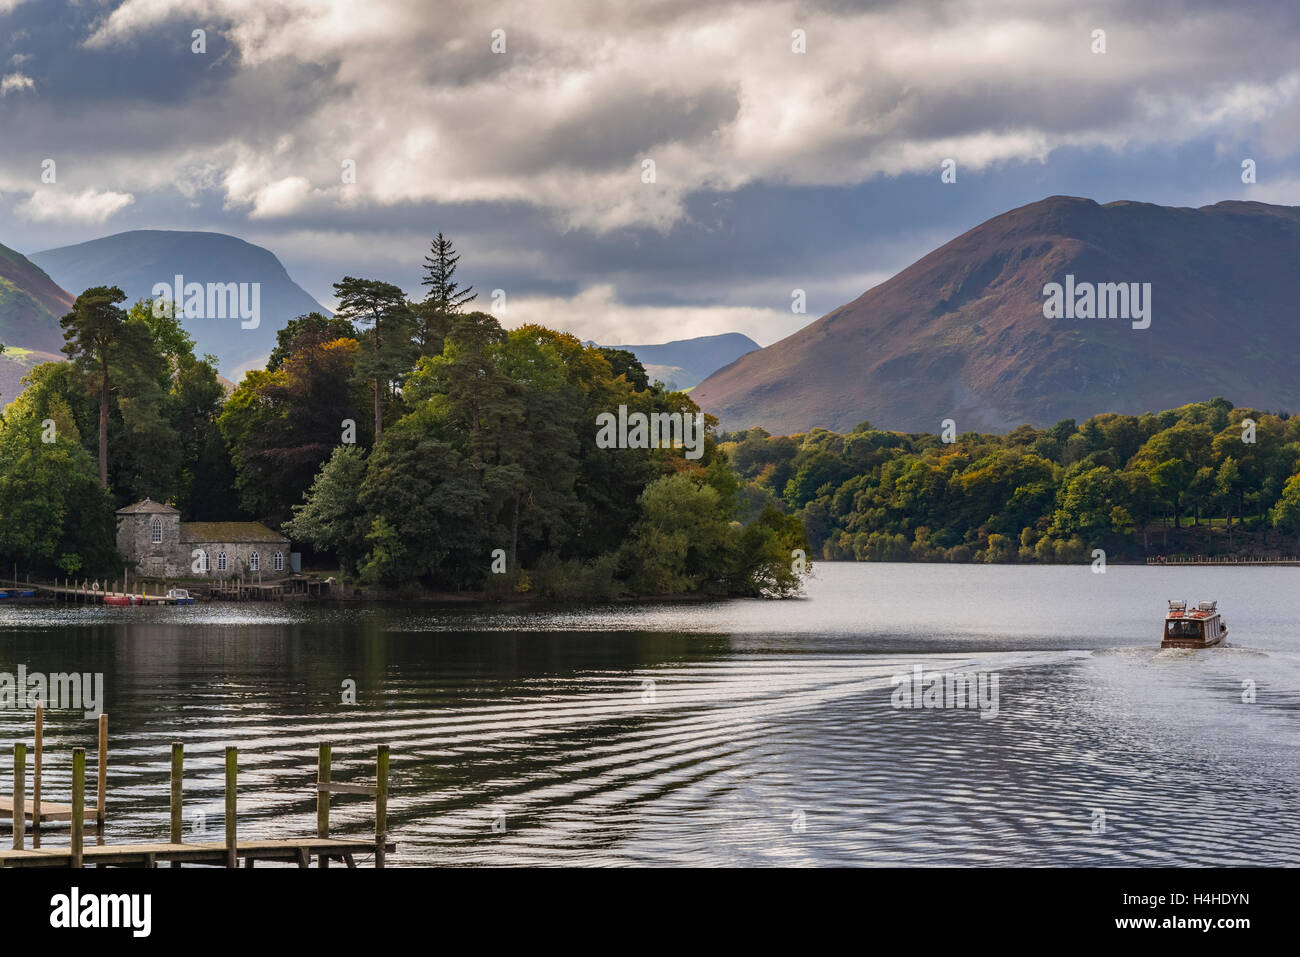 Derwentwater at Keswick with pleasure launch. - Stock Image